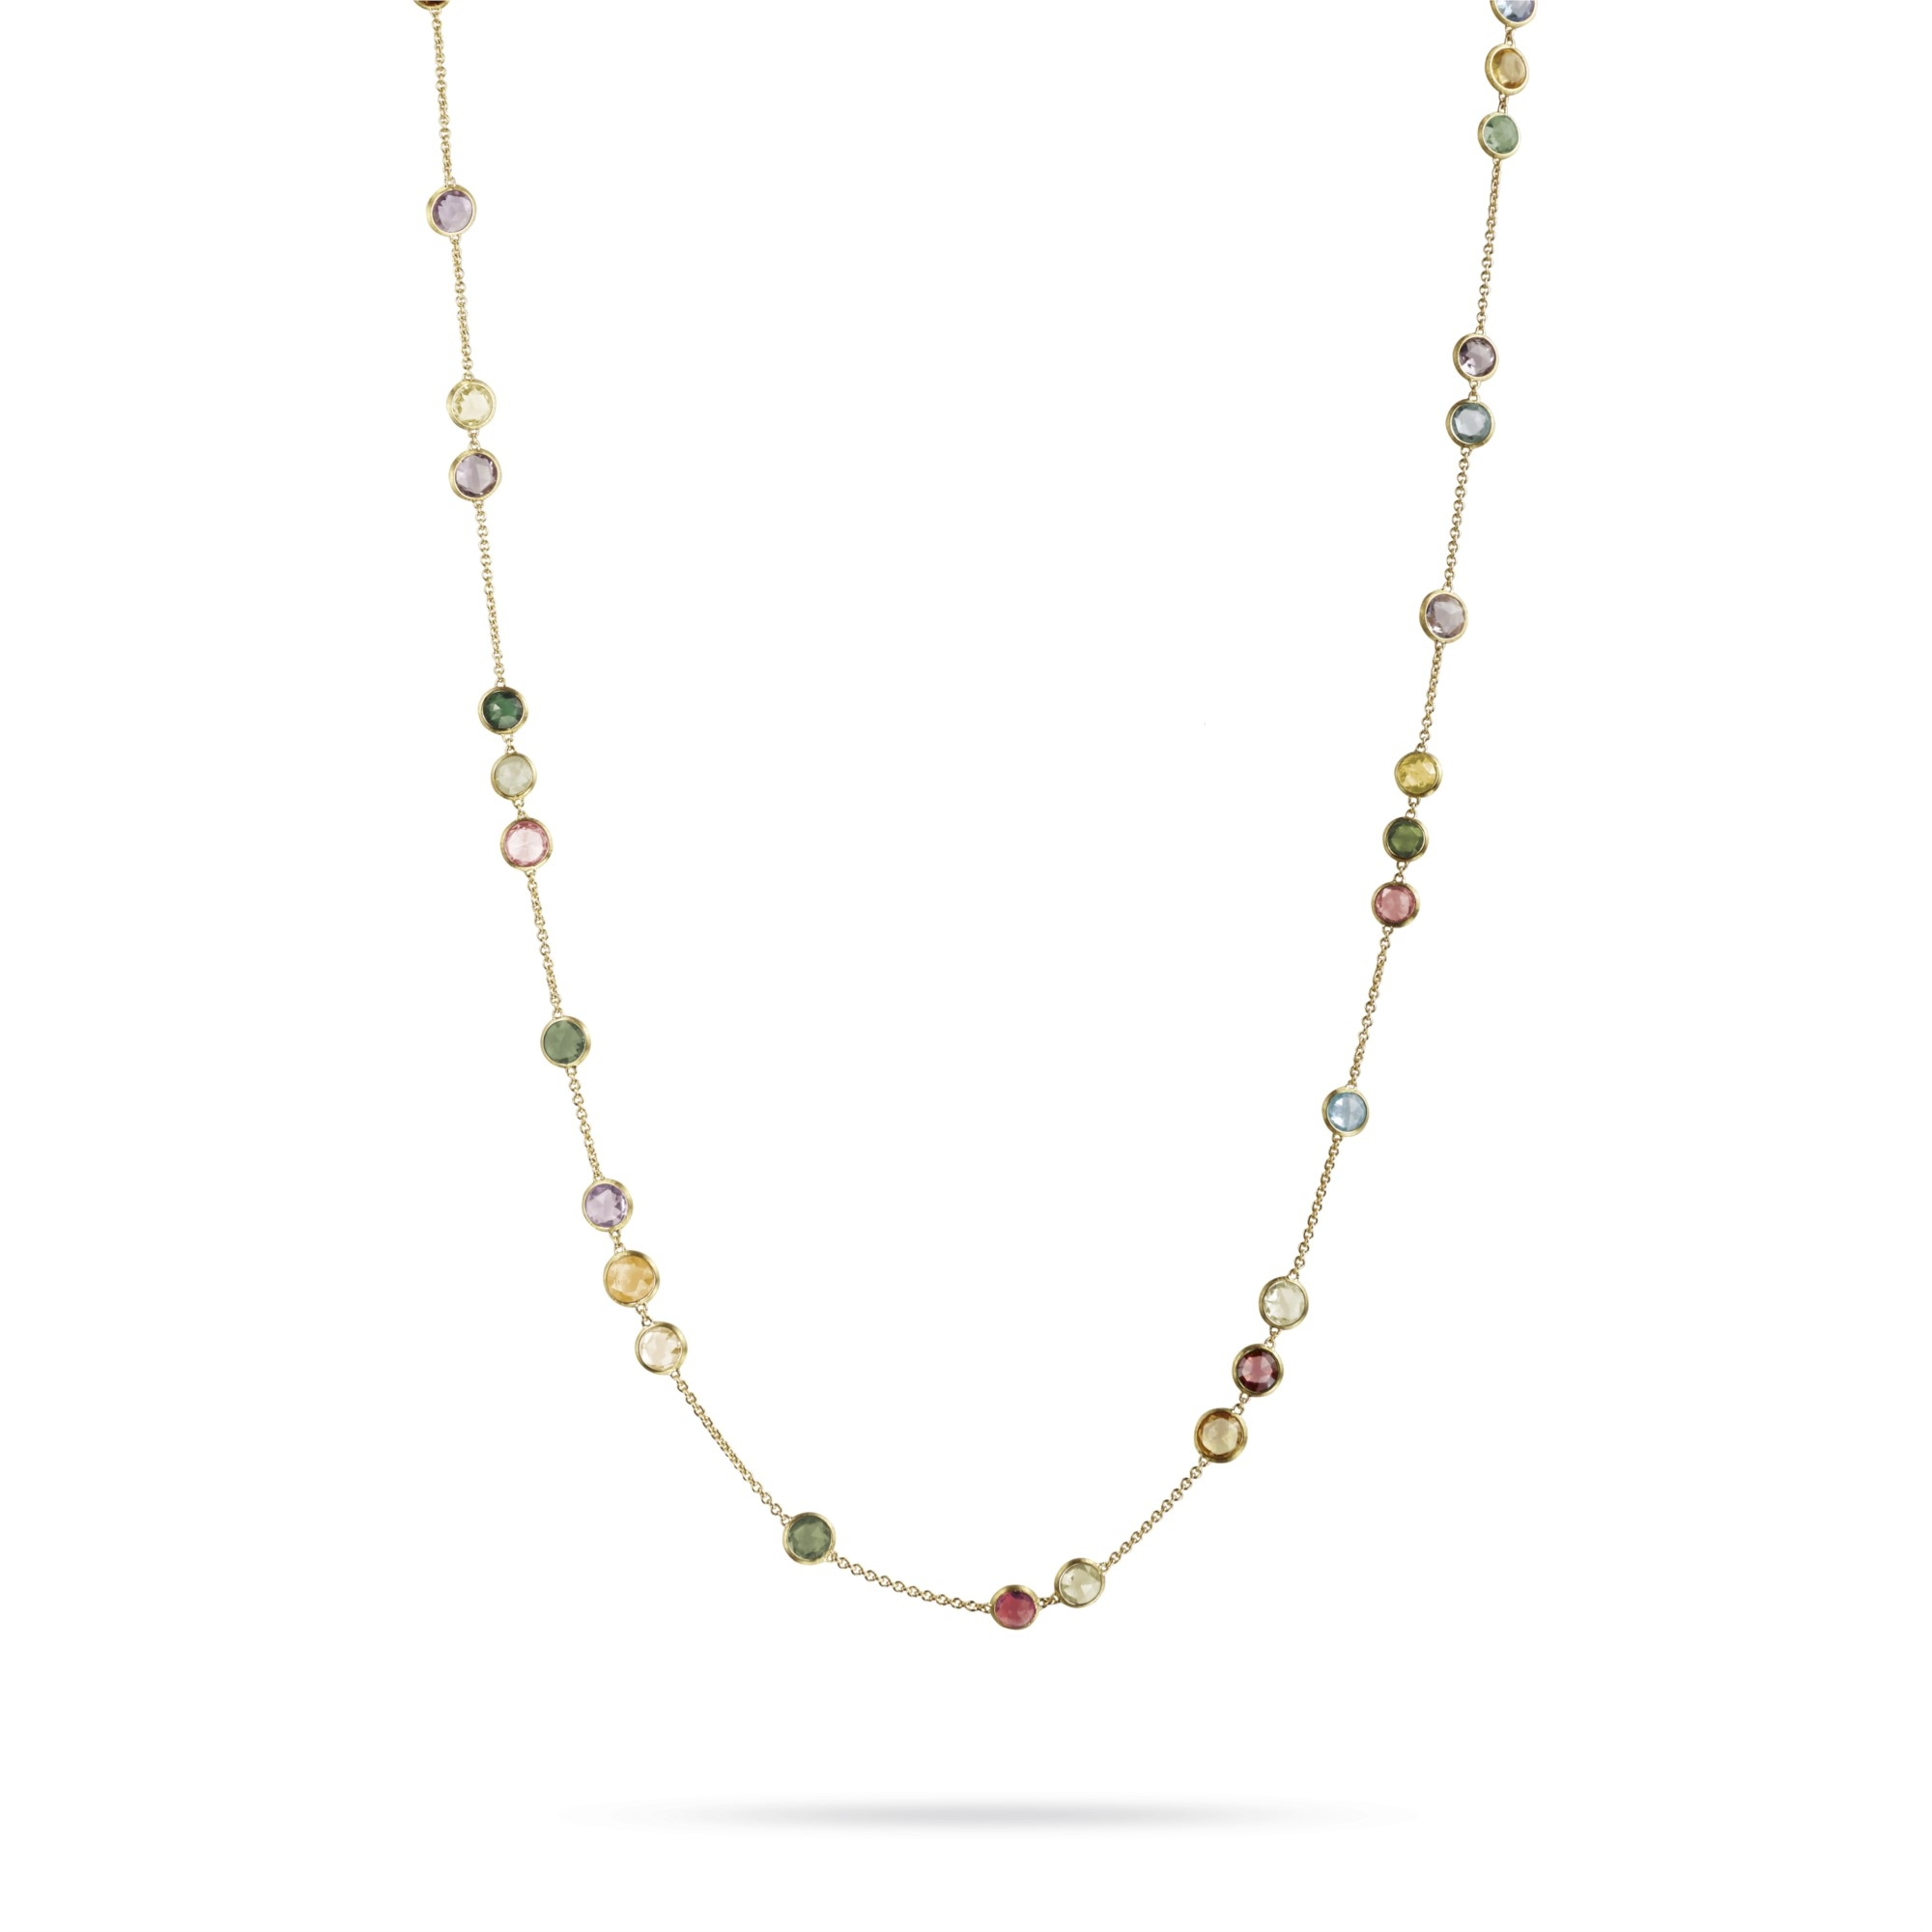 Marco Bicego 18K Yellow Gold    Gold Necklace with Stones CB1309 MIX01 Y